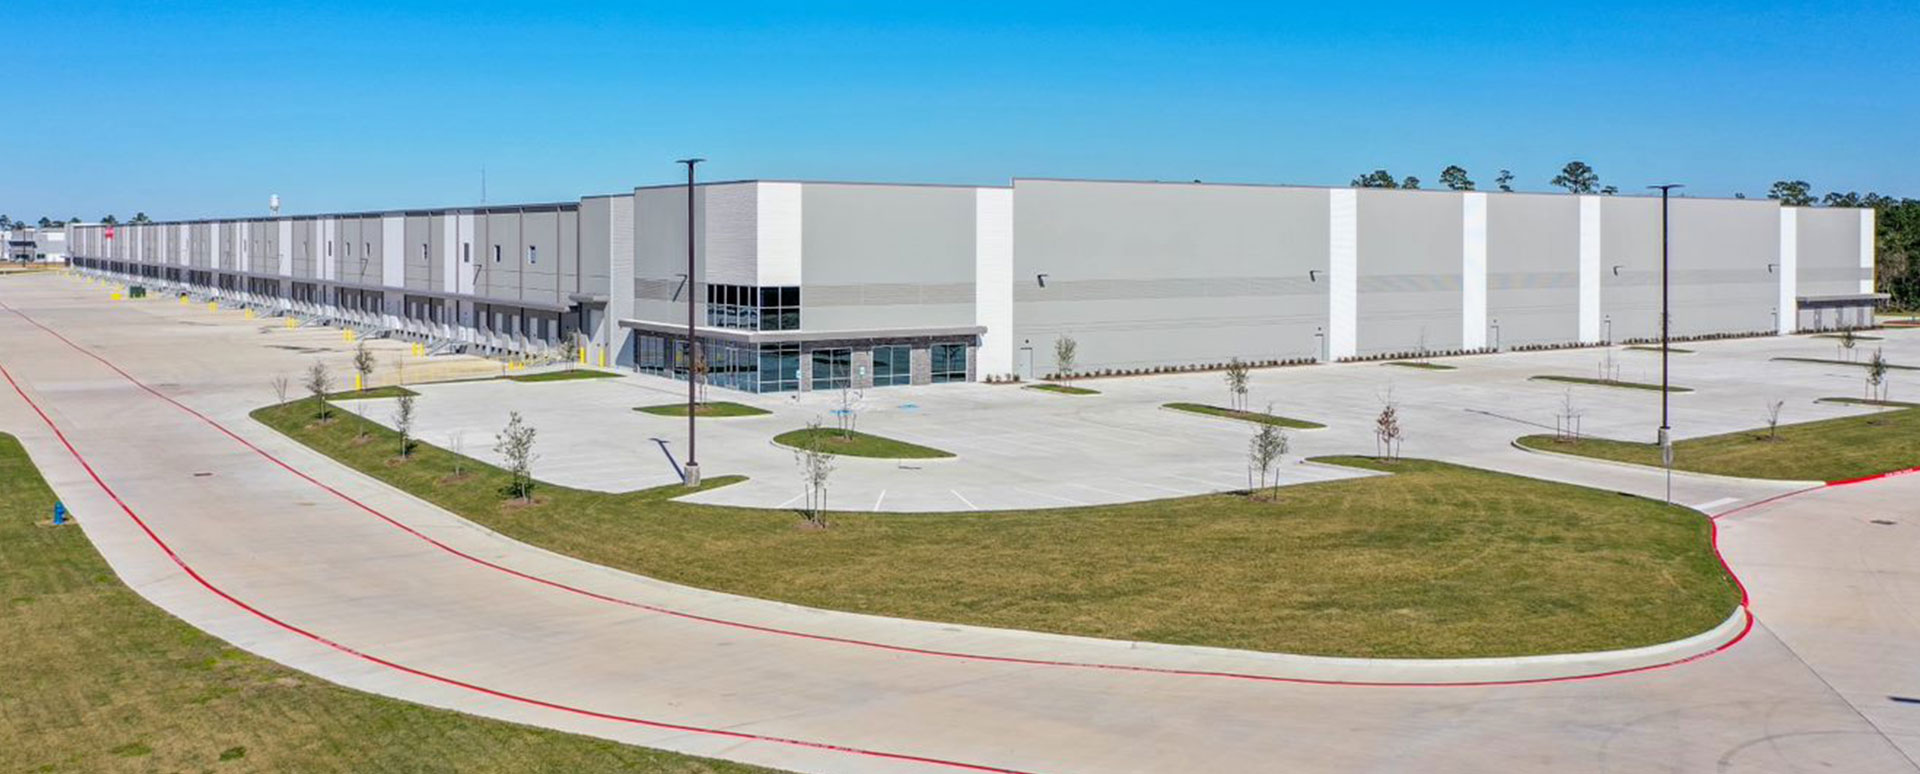 Recently Completed: Air 59 Logistics Center - Humble, TX 2